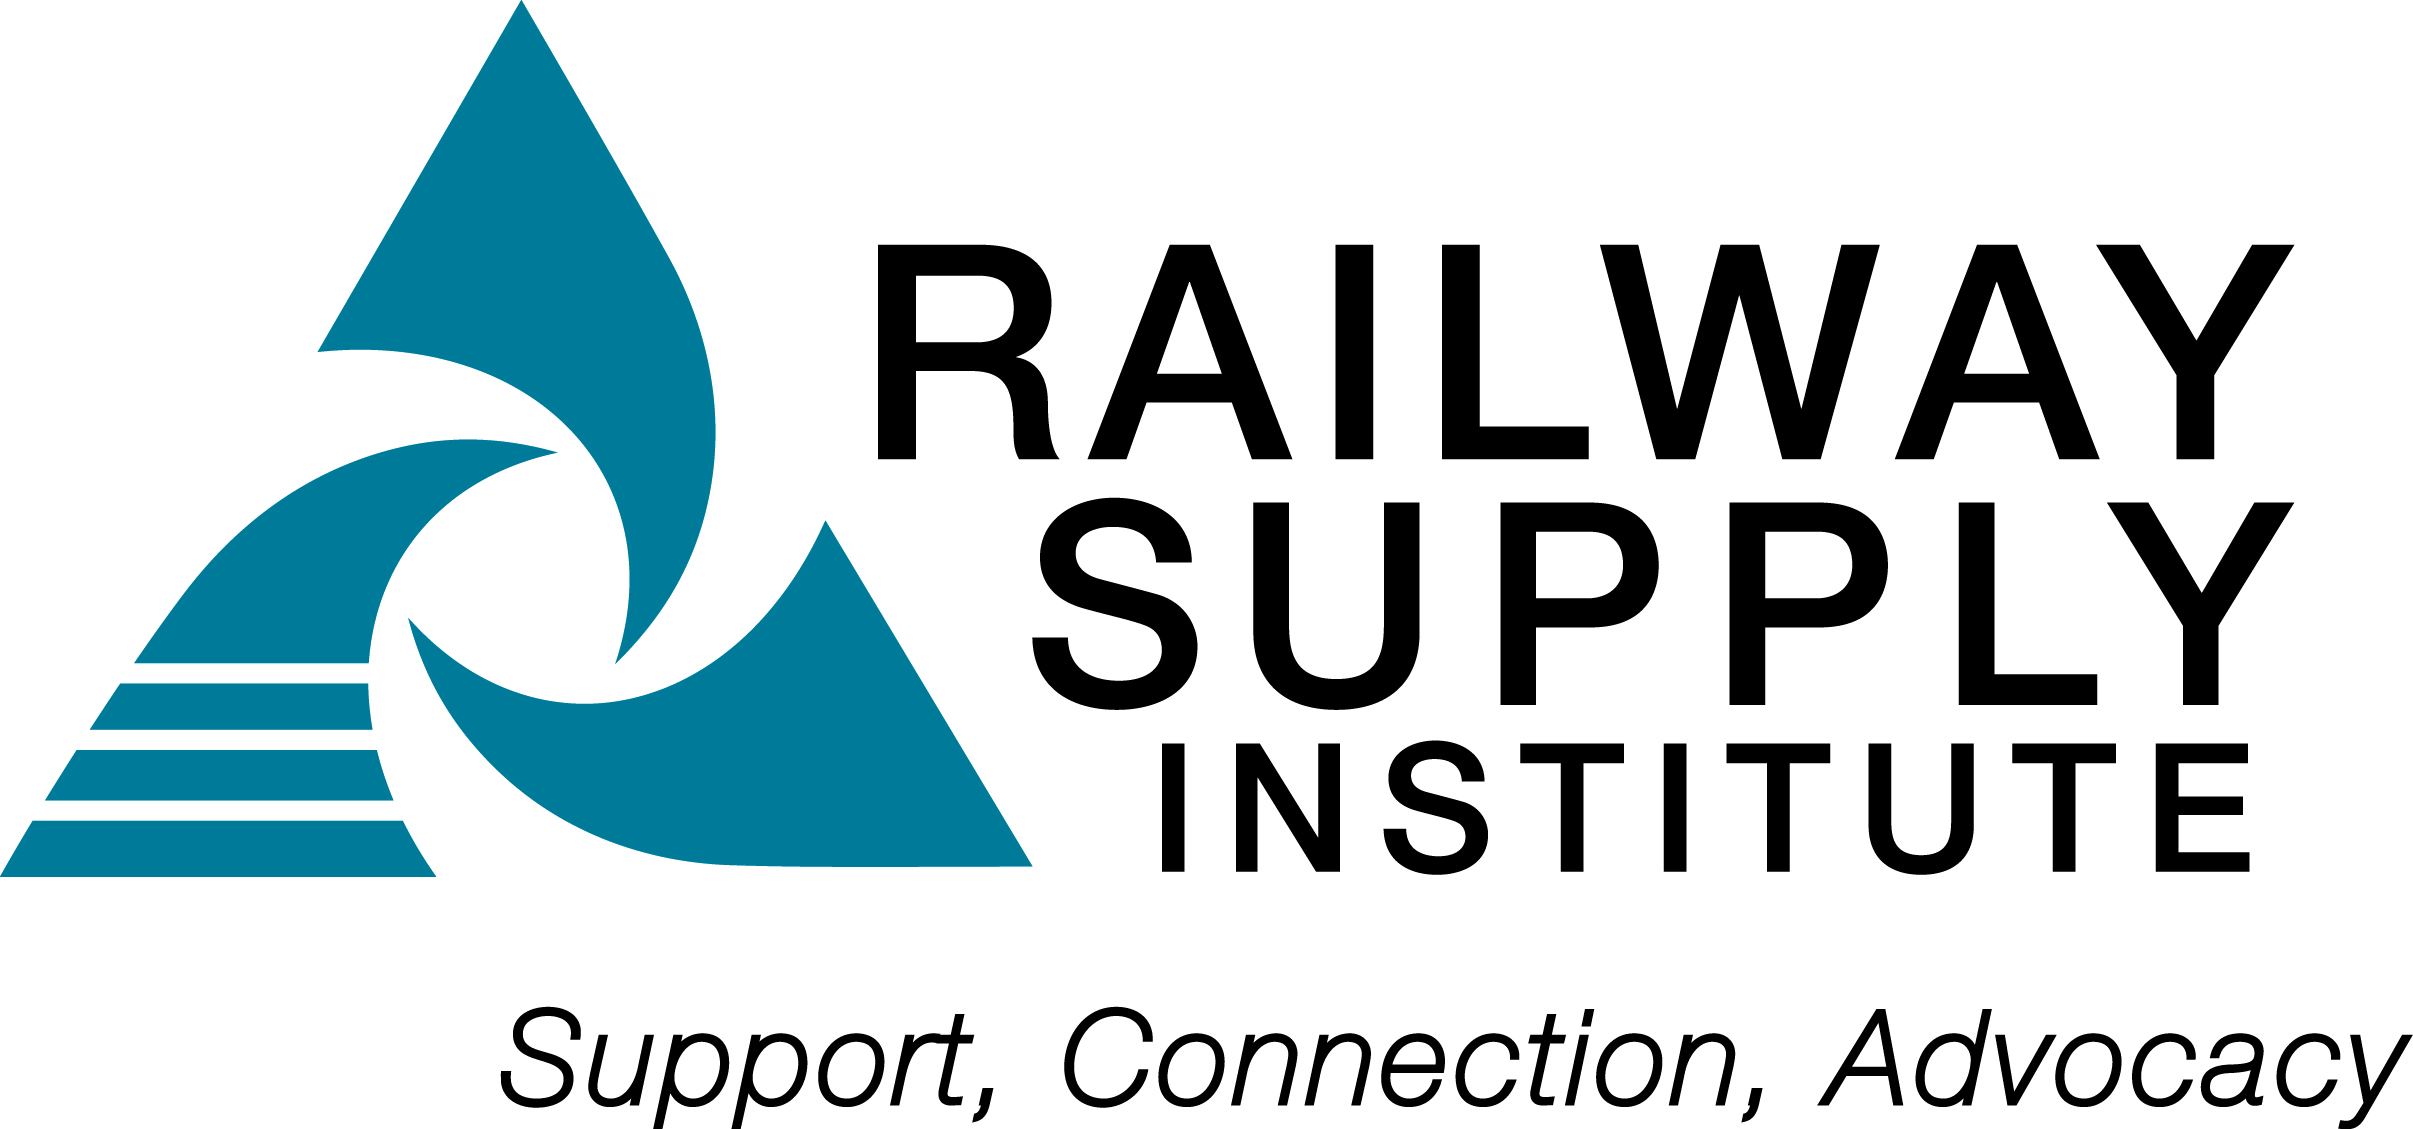 Railway Supply Institute 12-09  300 dpi